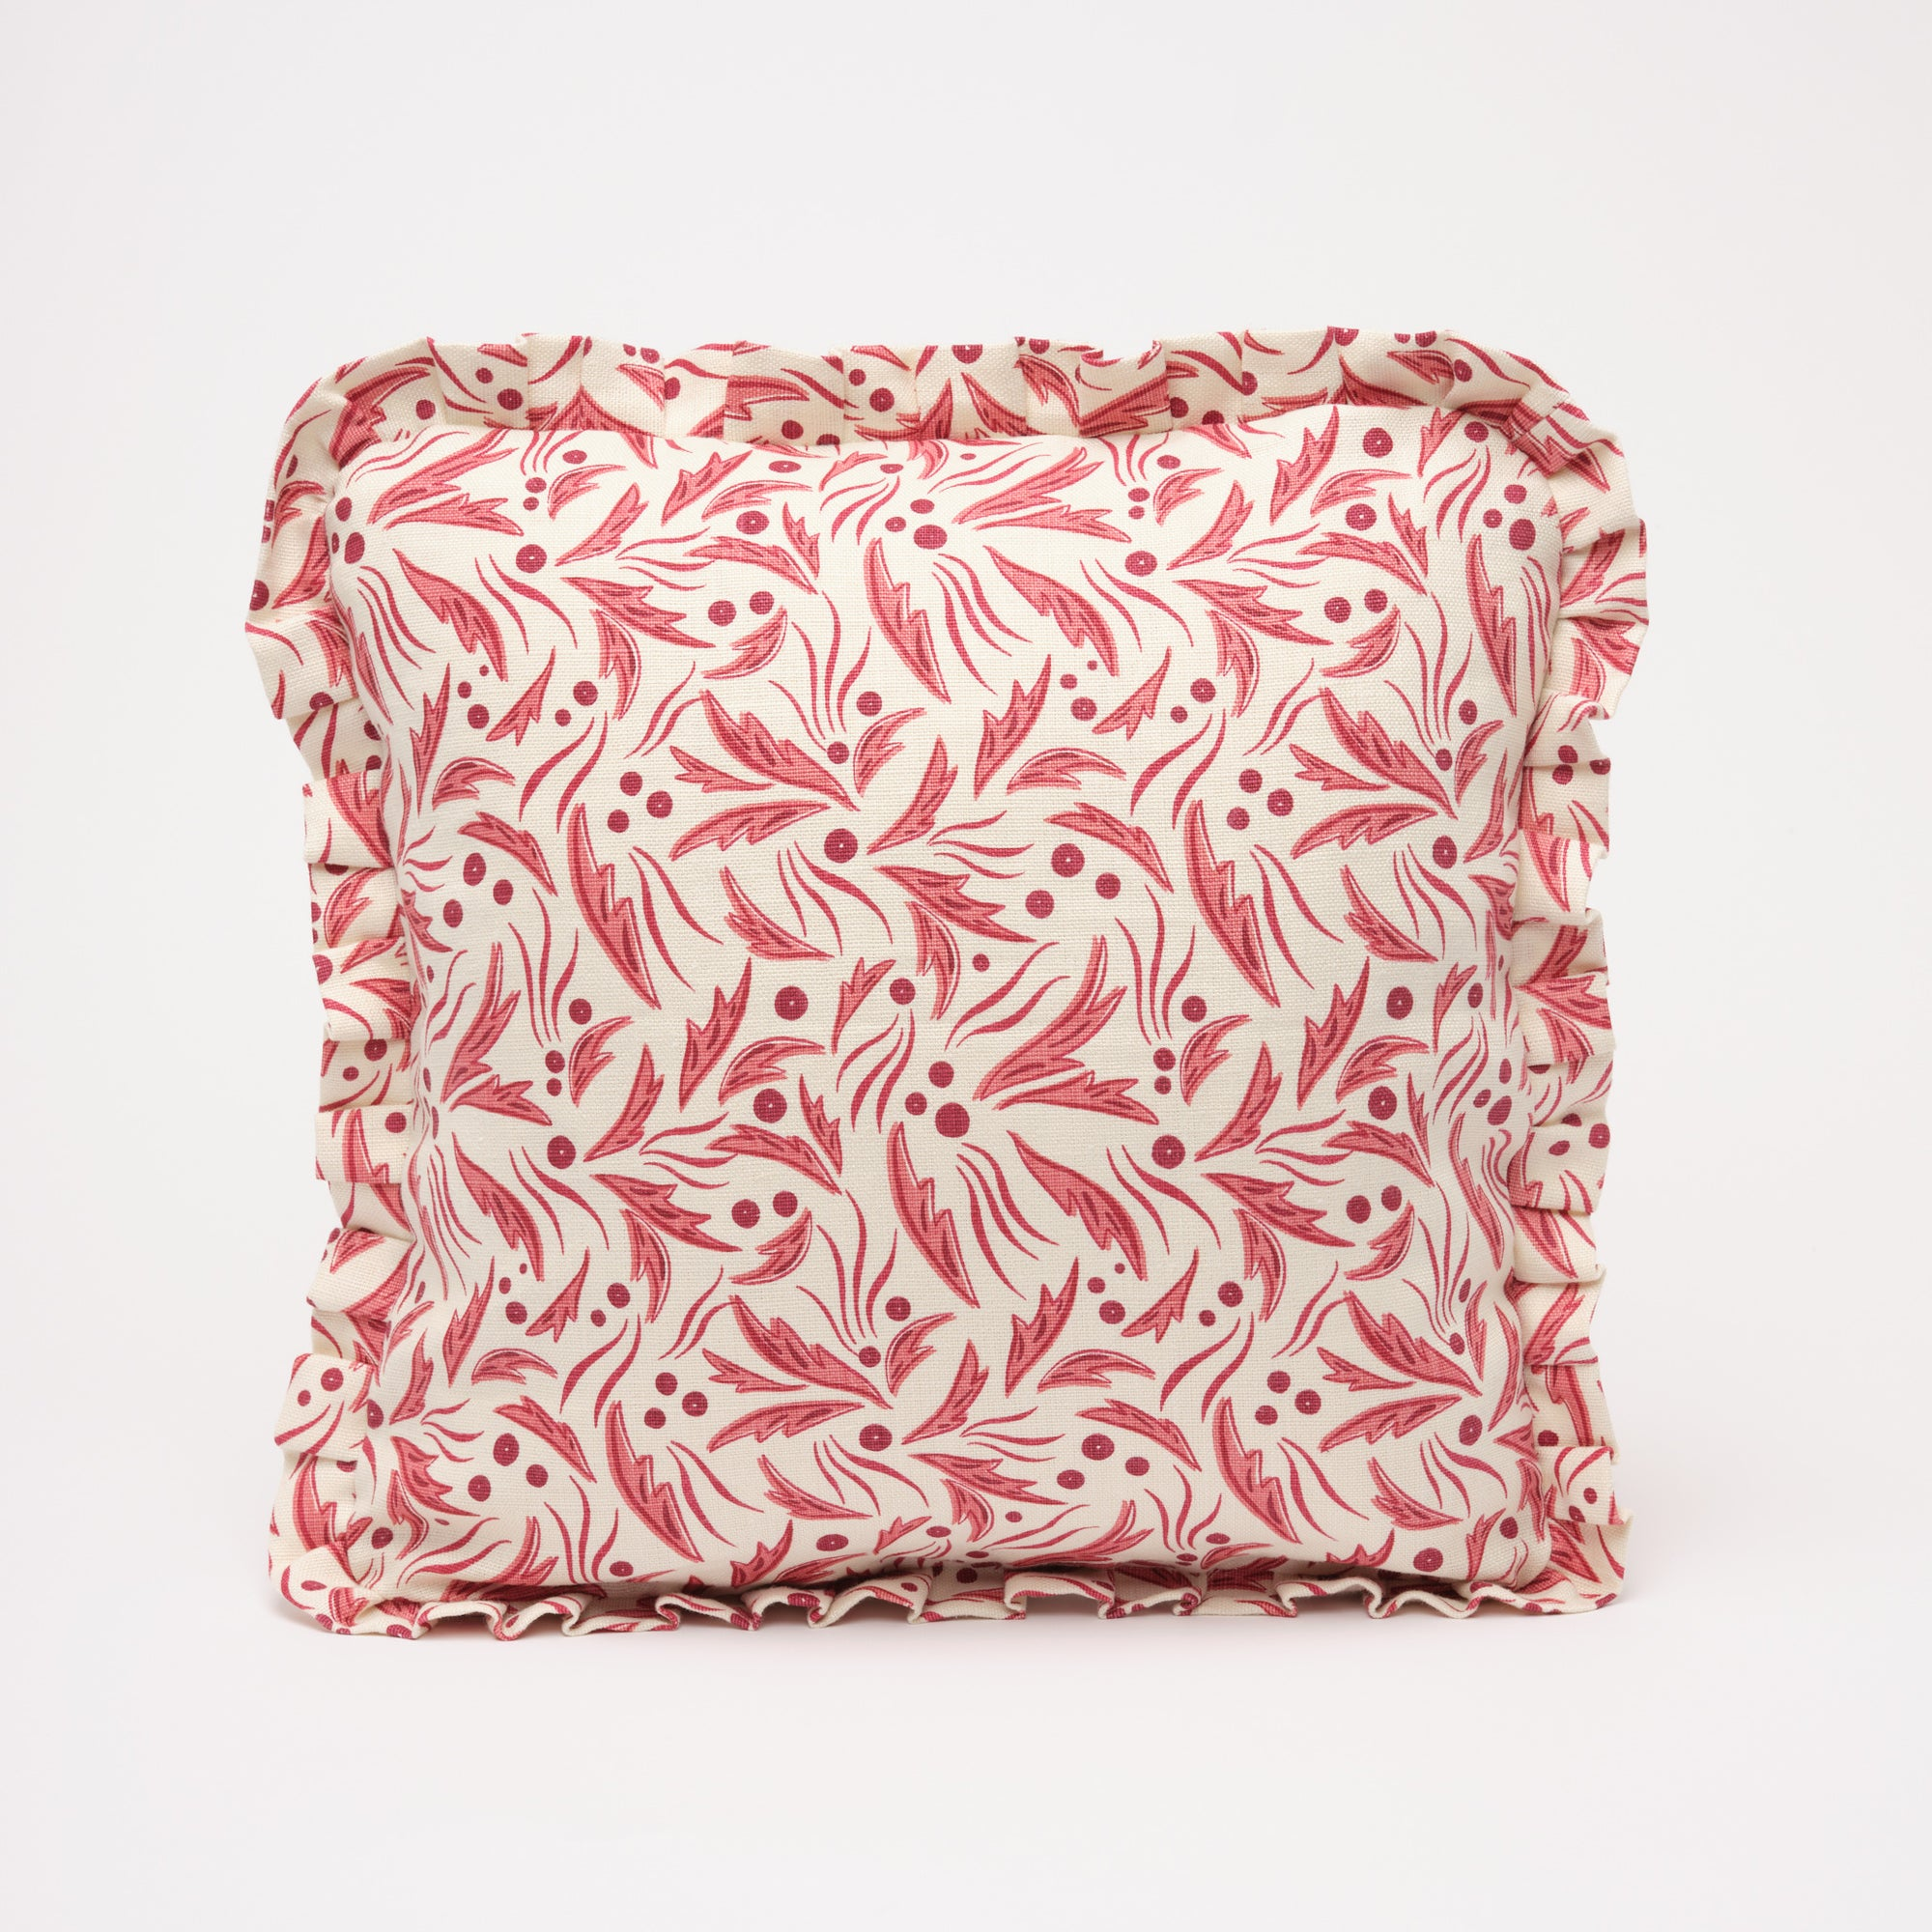 SOPHIA RUFFLE CUSHION - RASPBERRY